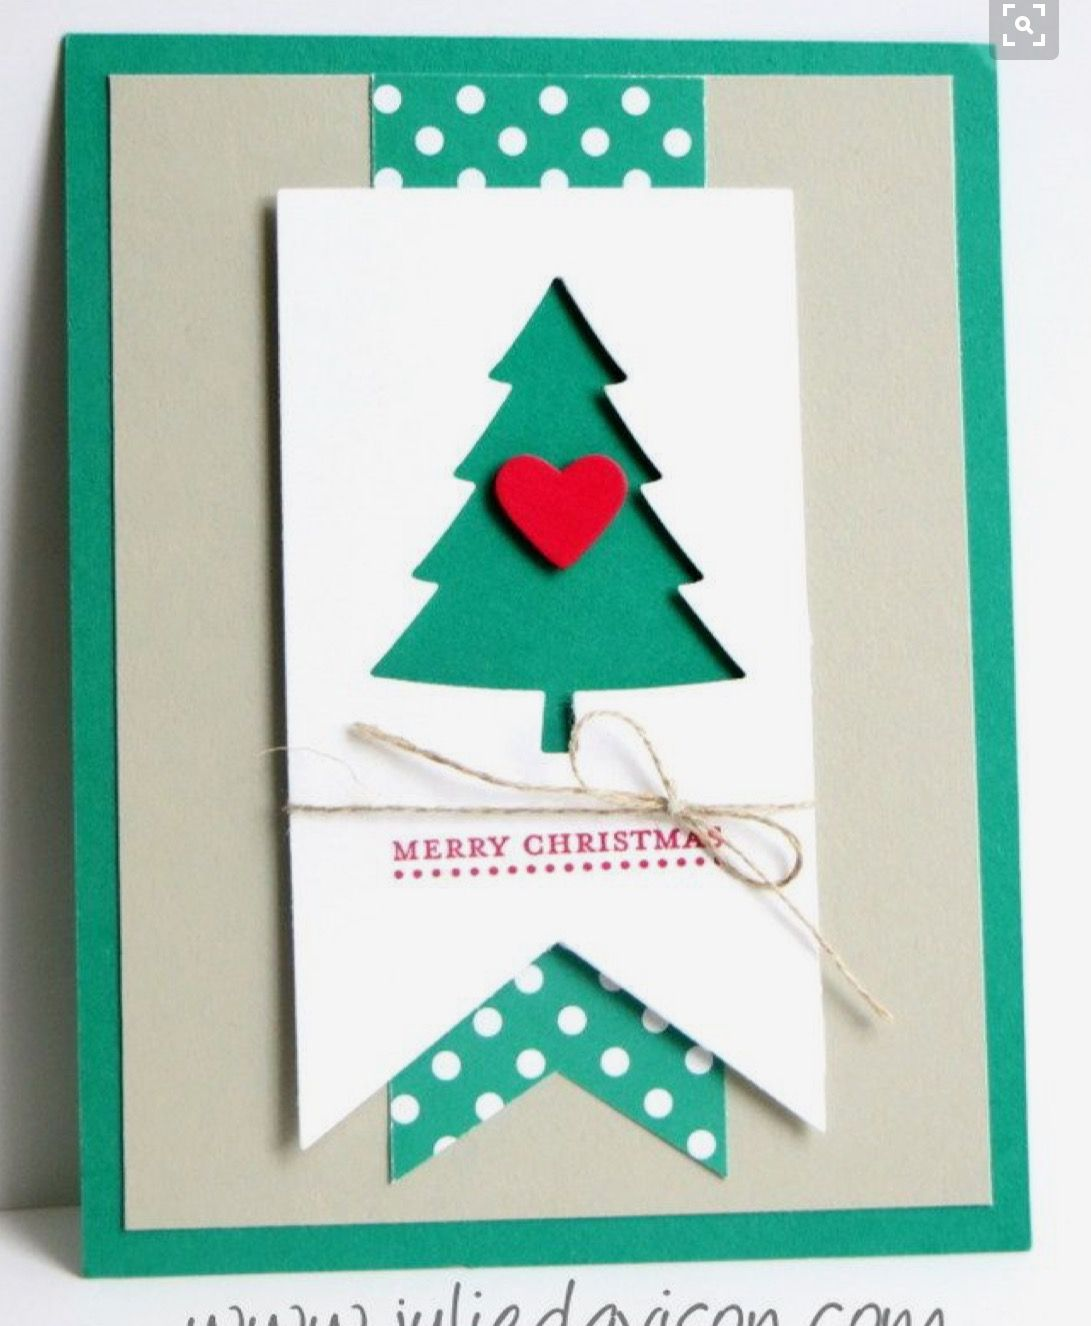 Christmas Card Silhouette Cameo Tree Diy Christmas Cards Christmas Cards Handmade Homemade Christmas Cards